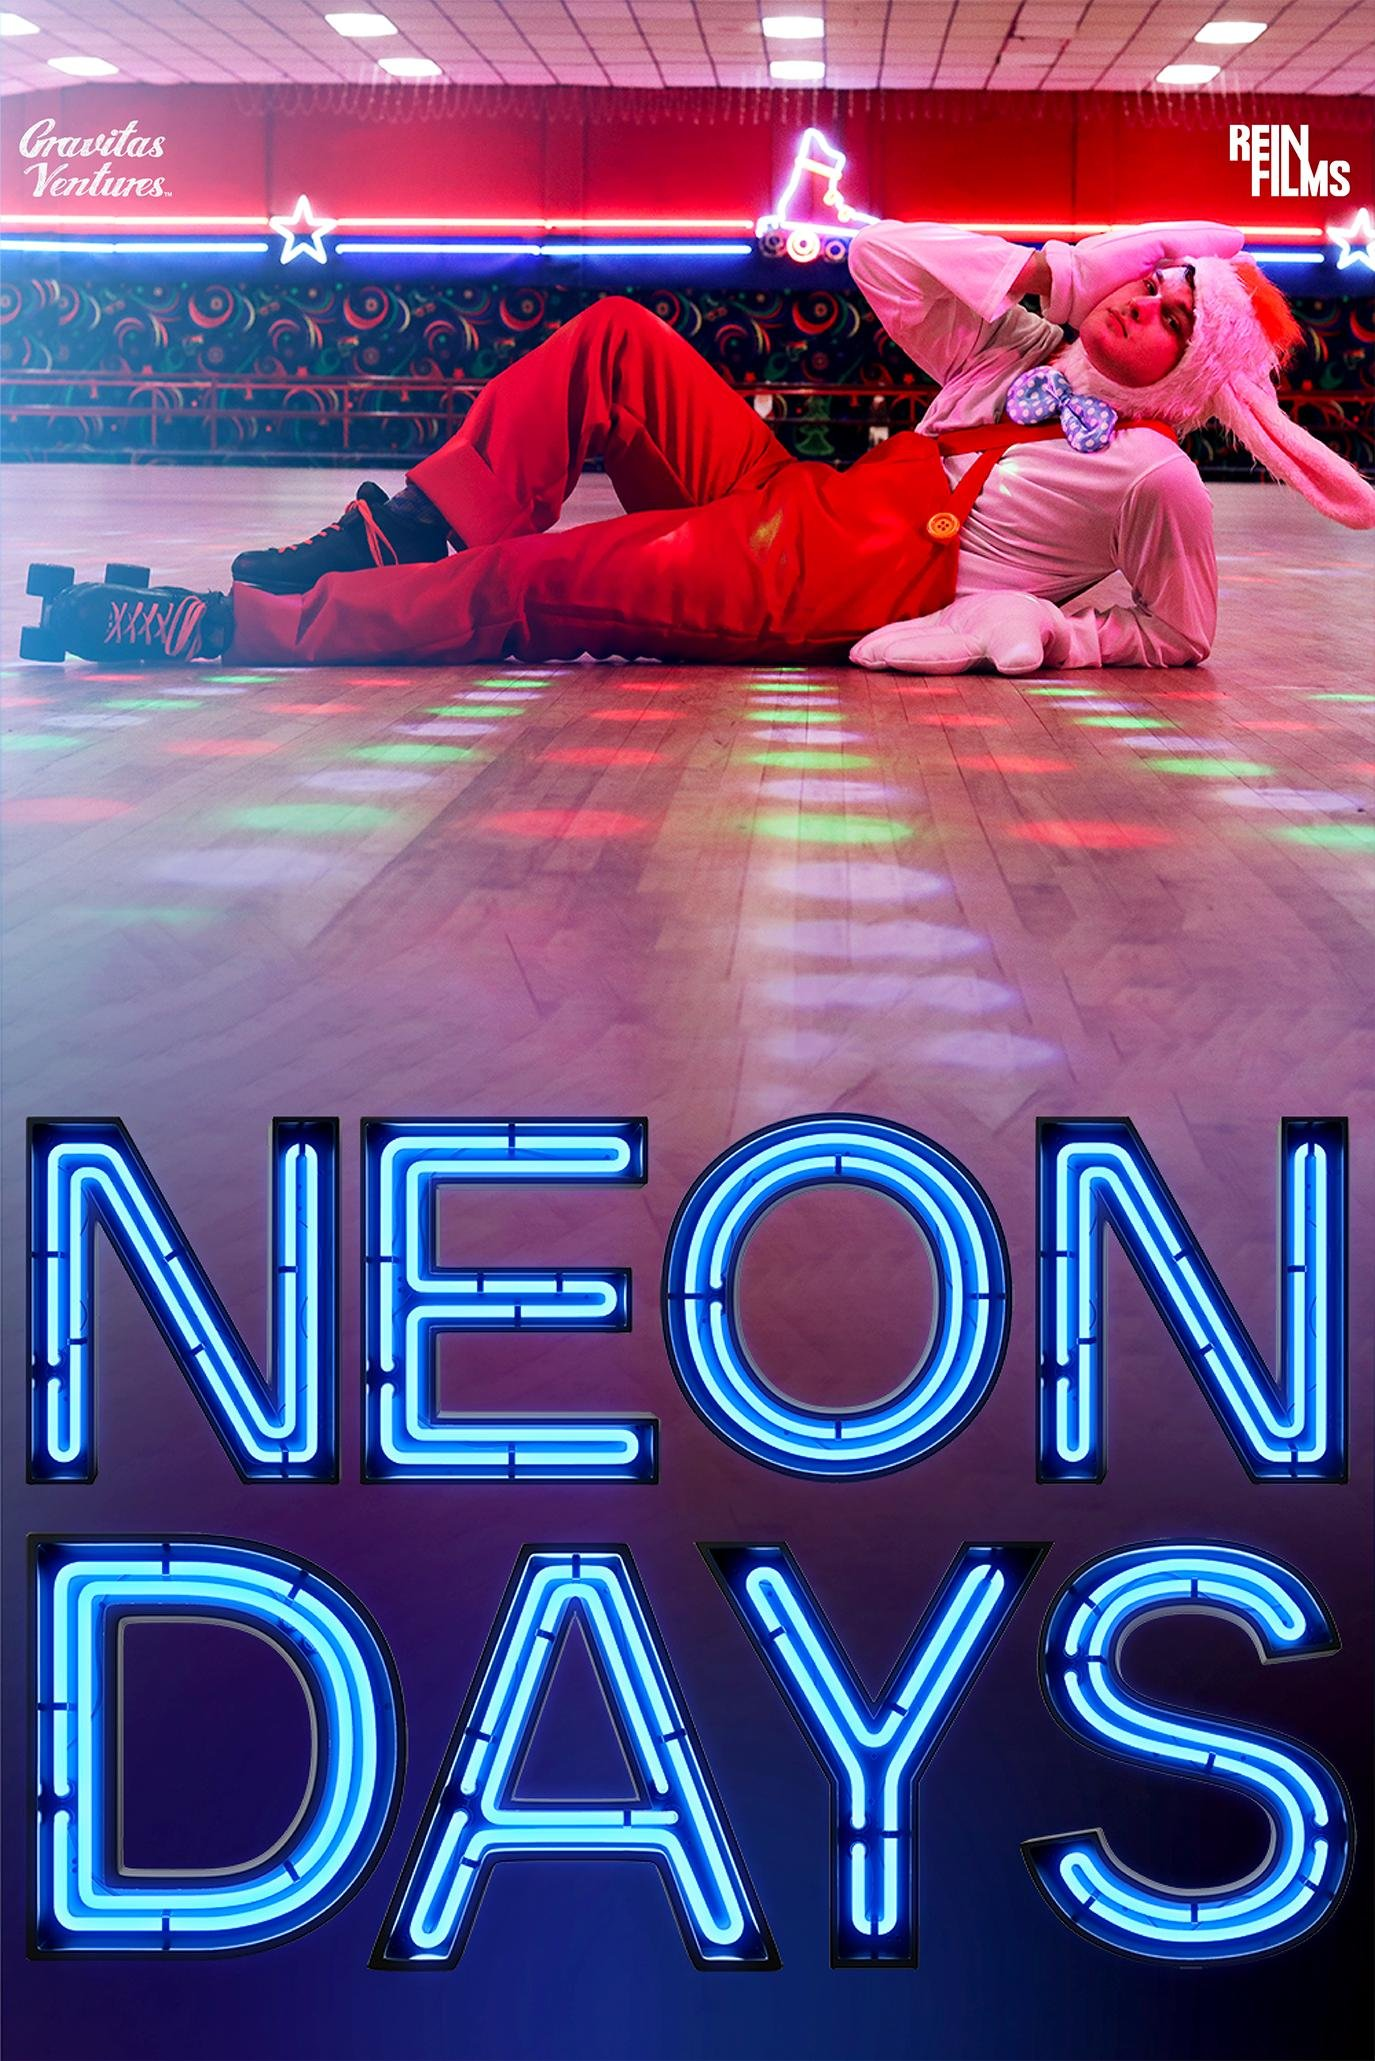 Neon Days (2019) poster image